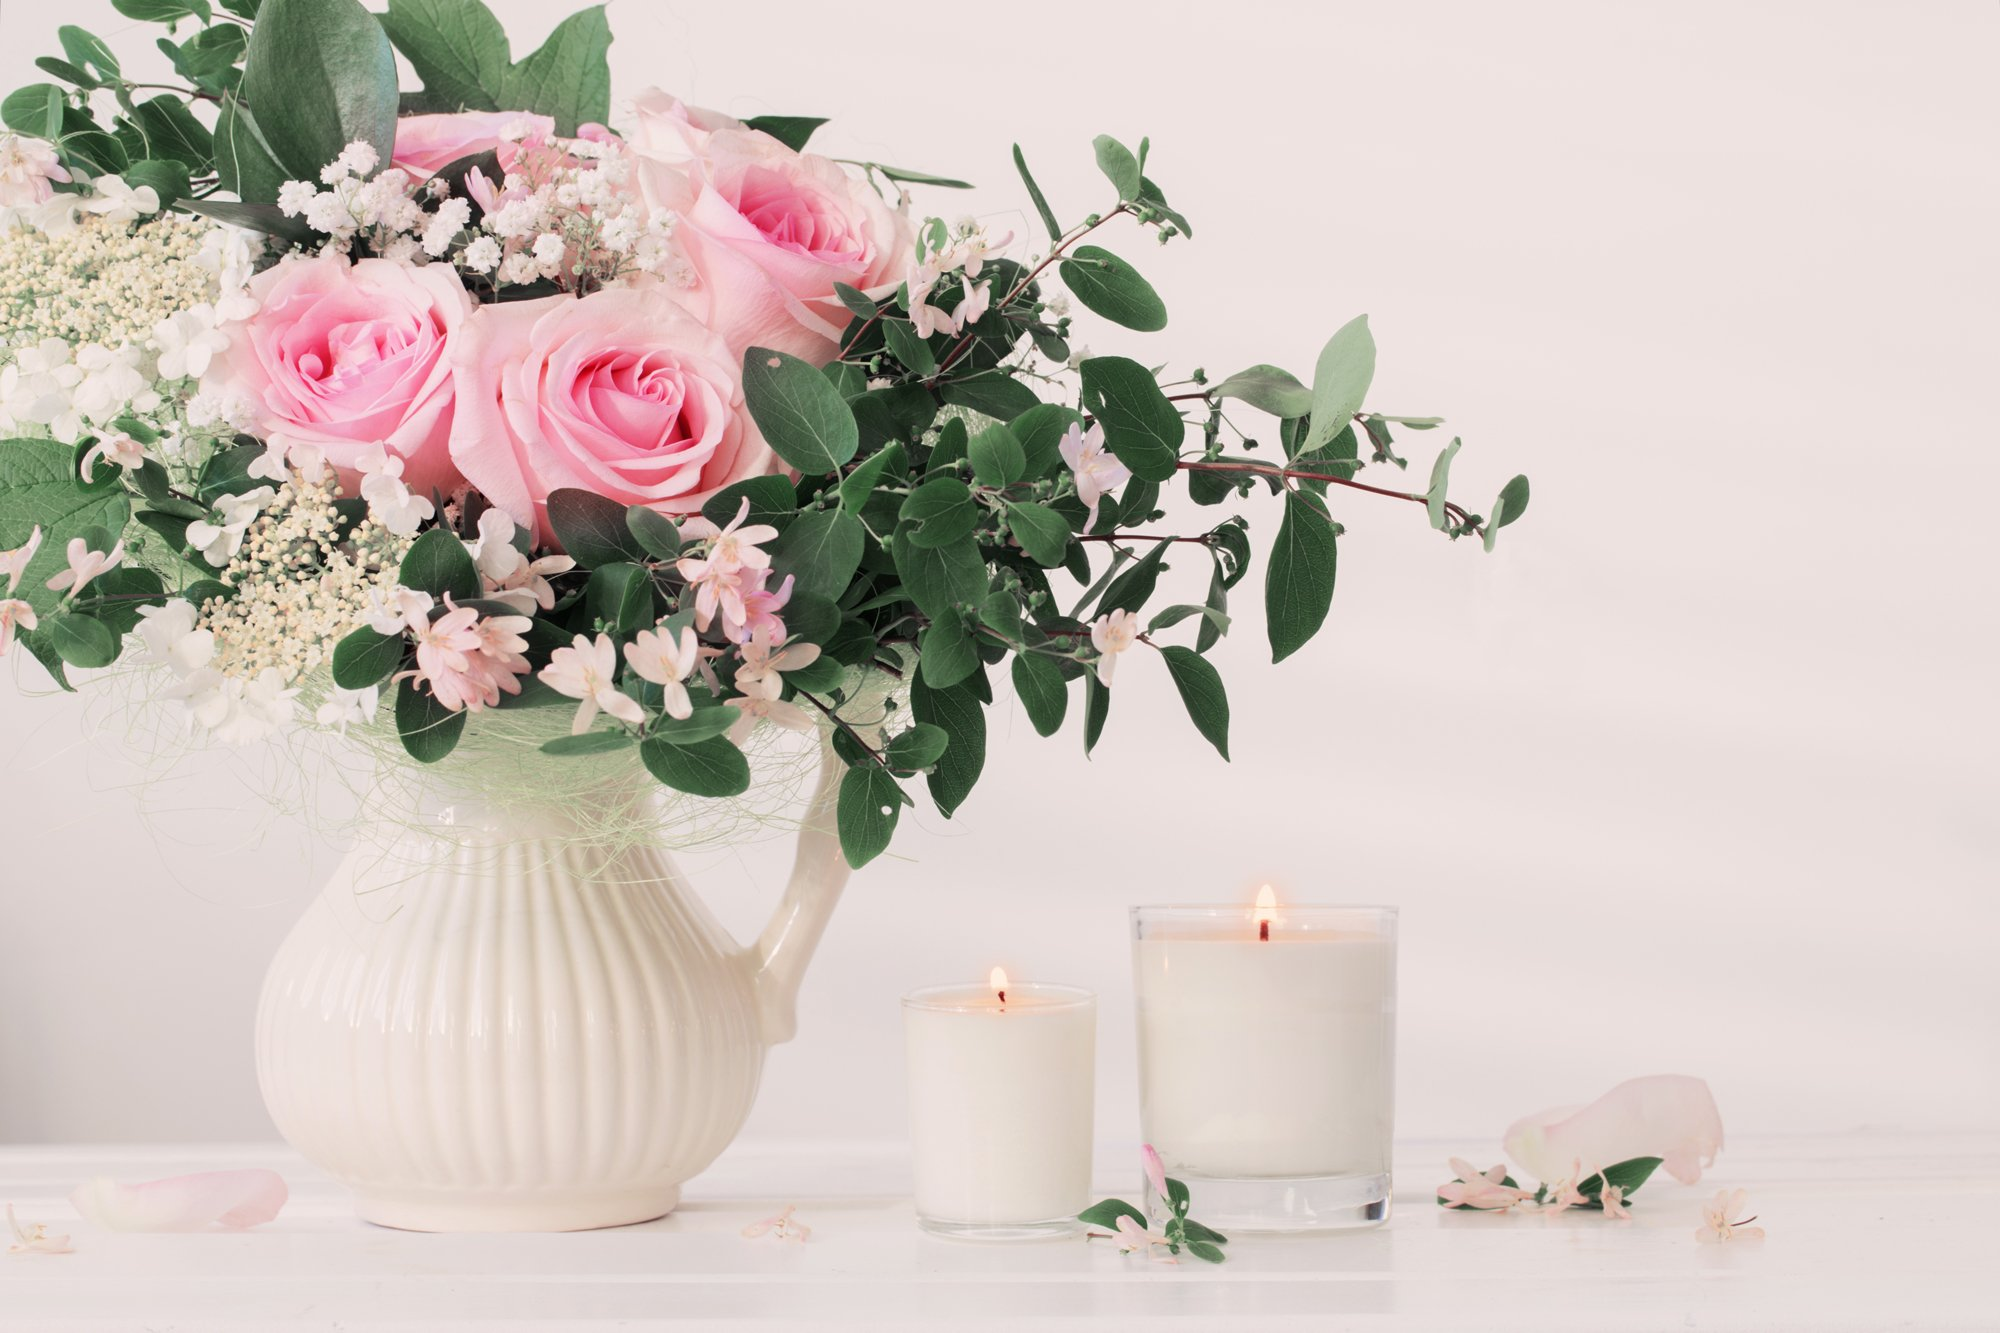 White flower vase with white scented candles